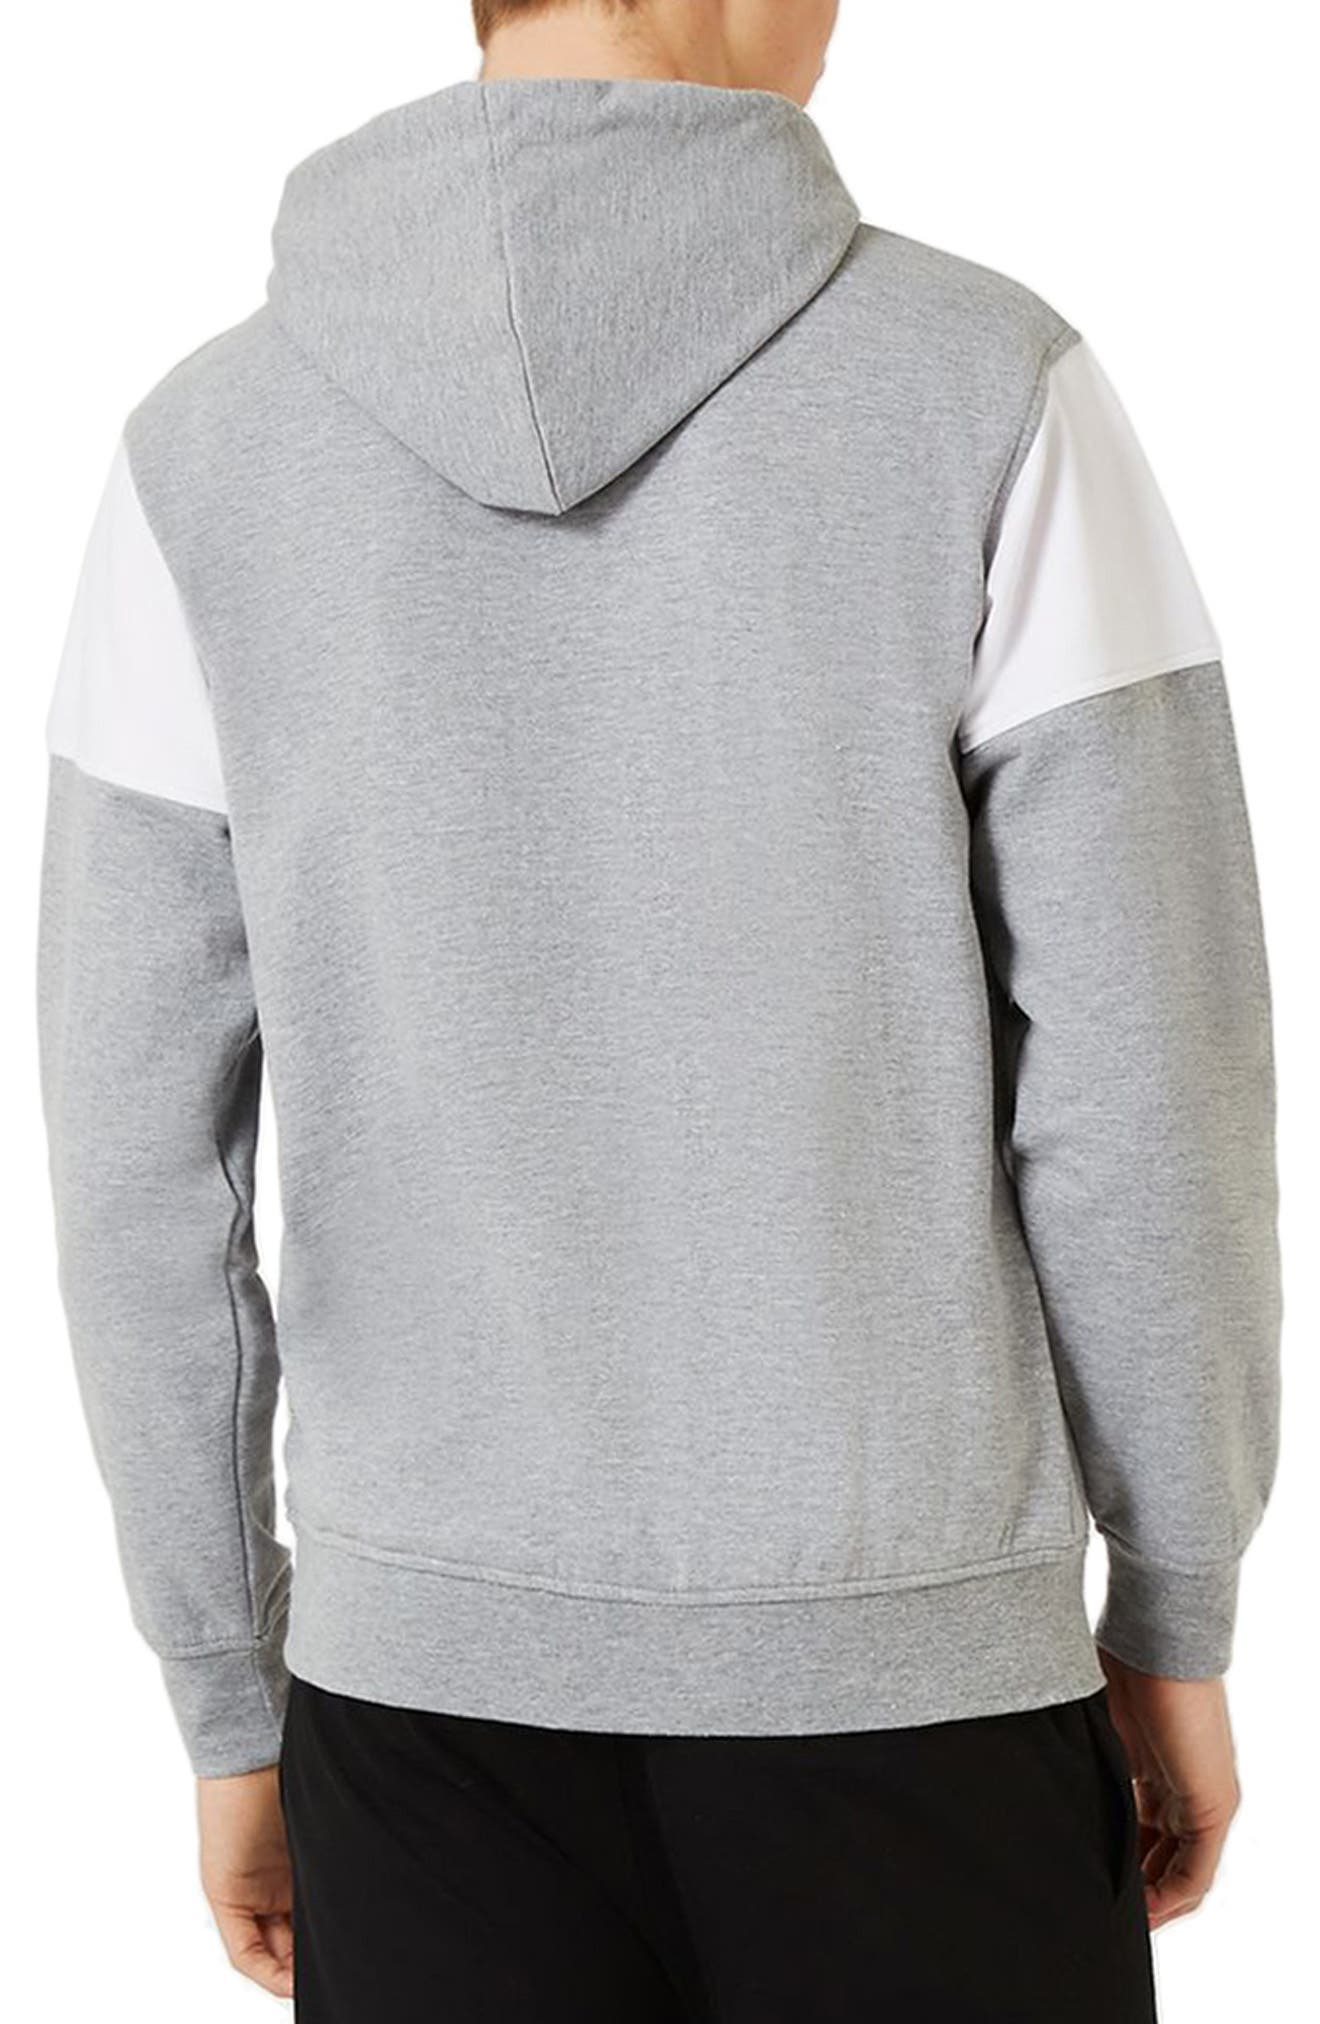 NICCE Slim Fit Colorblock Hoodie,                             Alternate thumbnail 2, color,                             Light Grey Multi